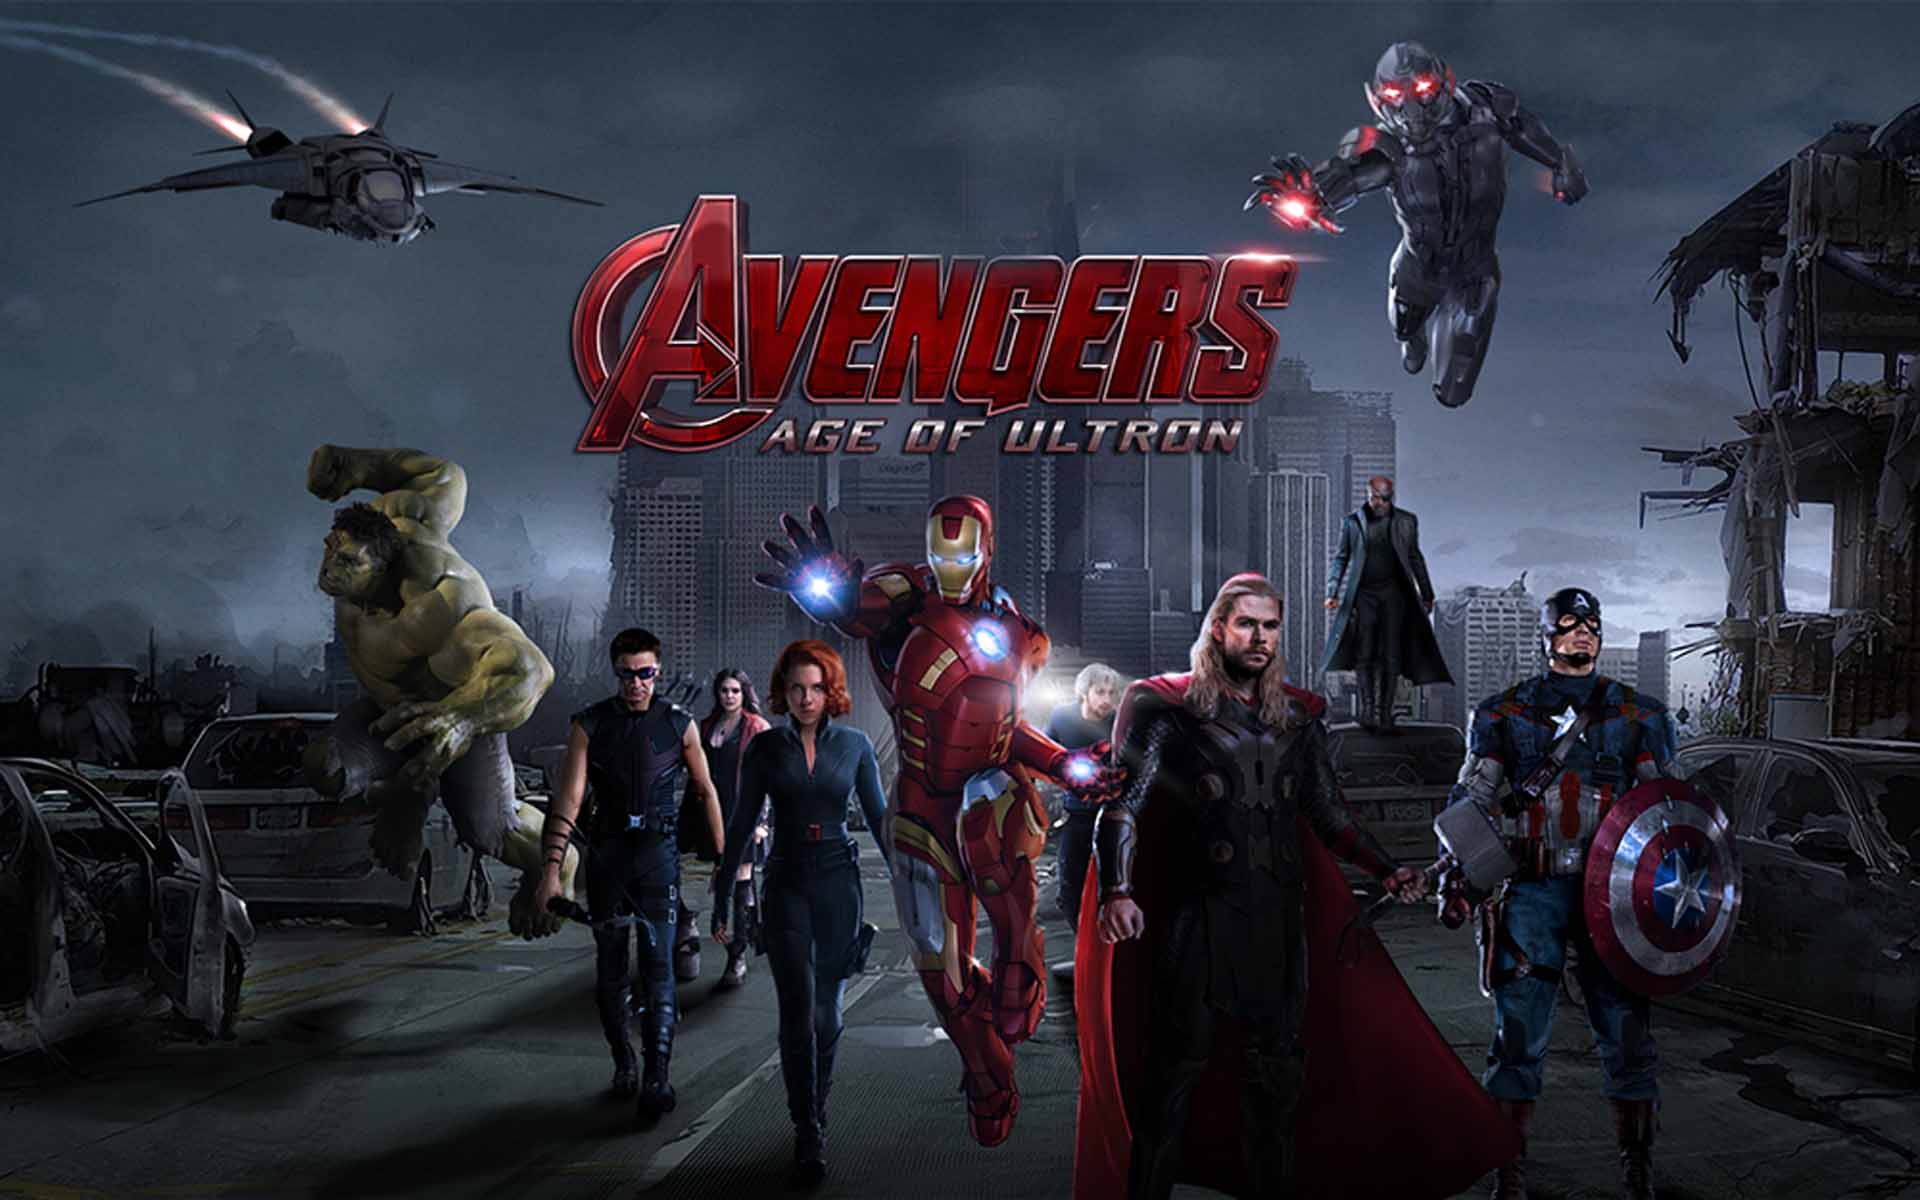 Avengers Age of Ultron 4K wallpapers – wallpapers free download